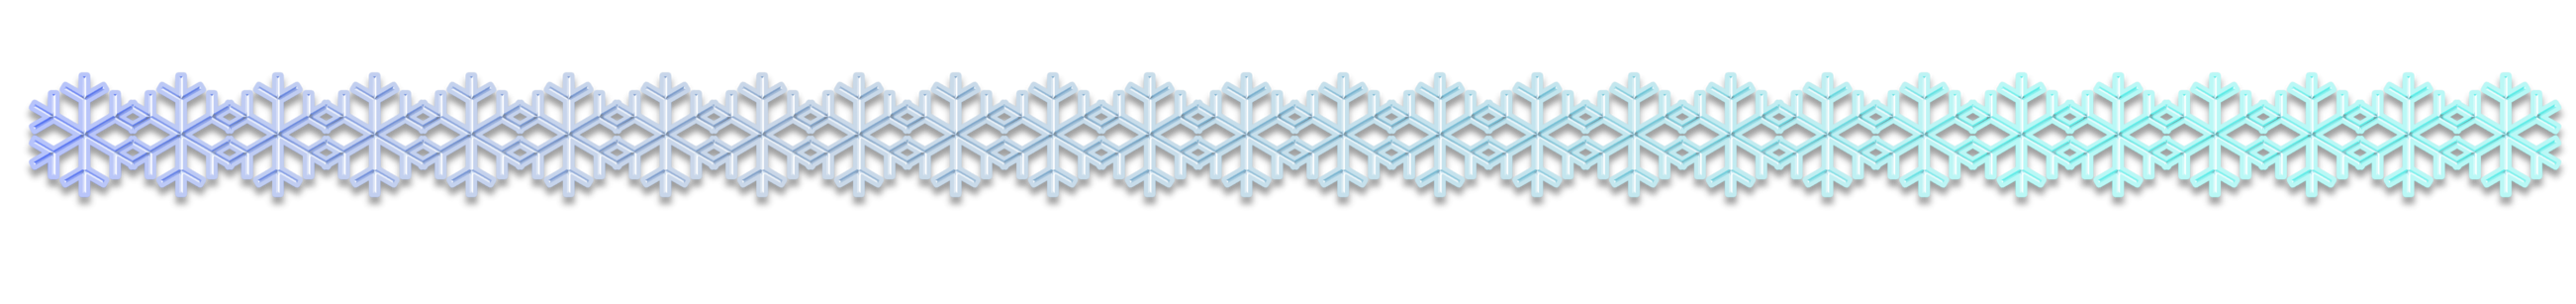 Snowflake divider clipart image freeuse download Features Extras – 11/29/2017 – The Xavier Newswire image freeuse download